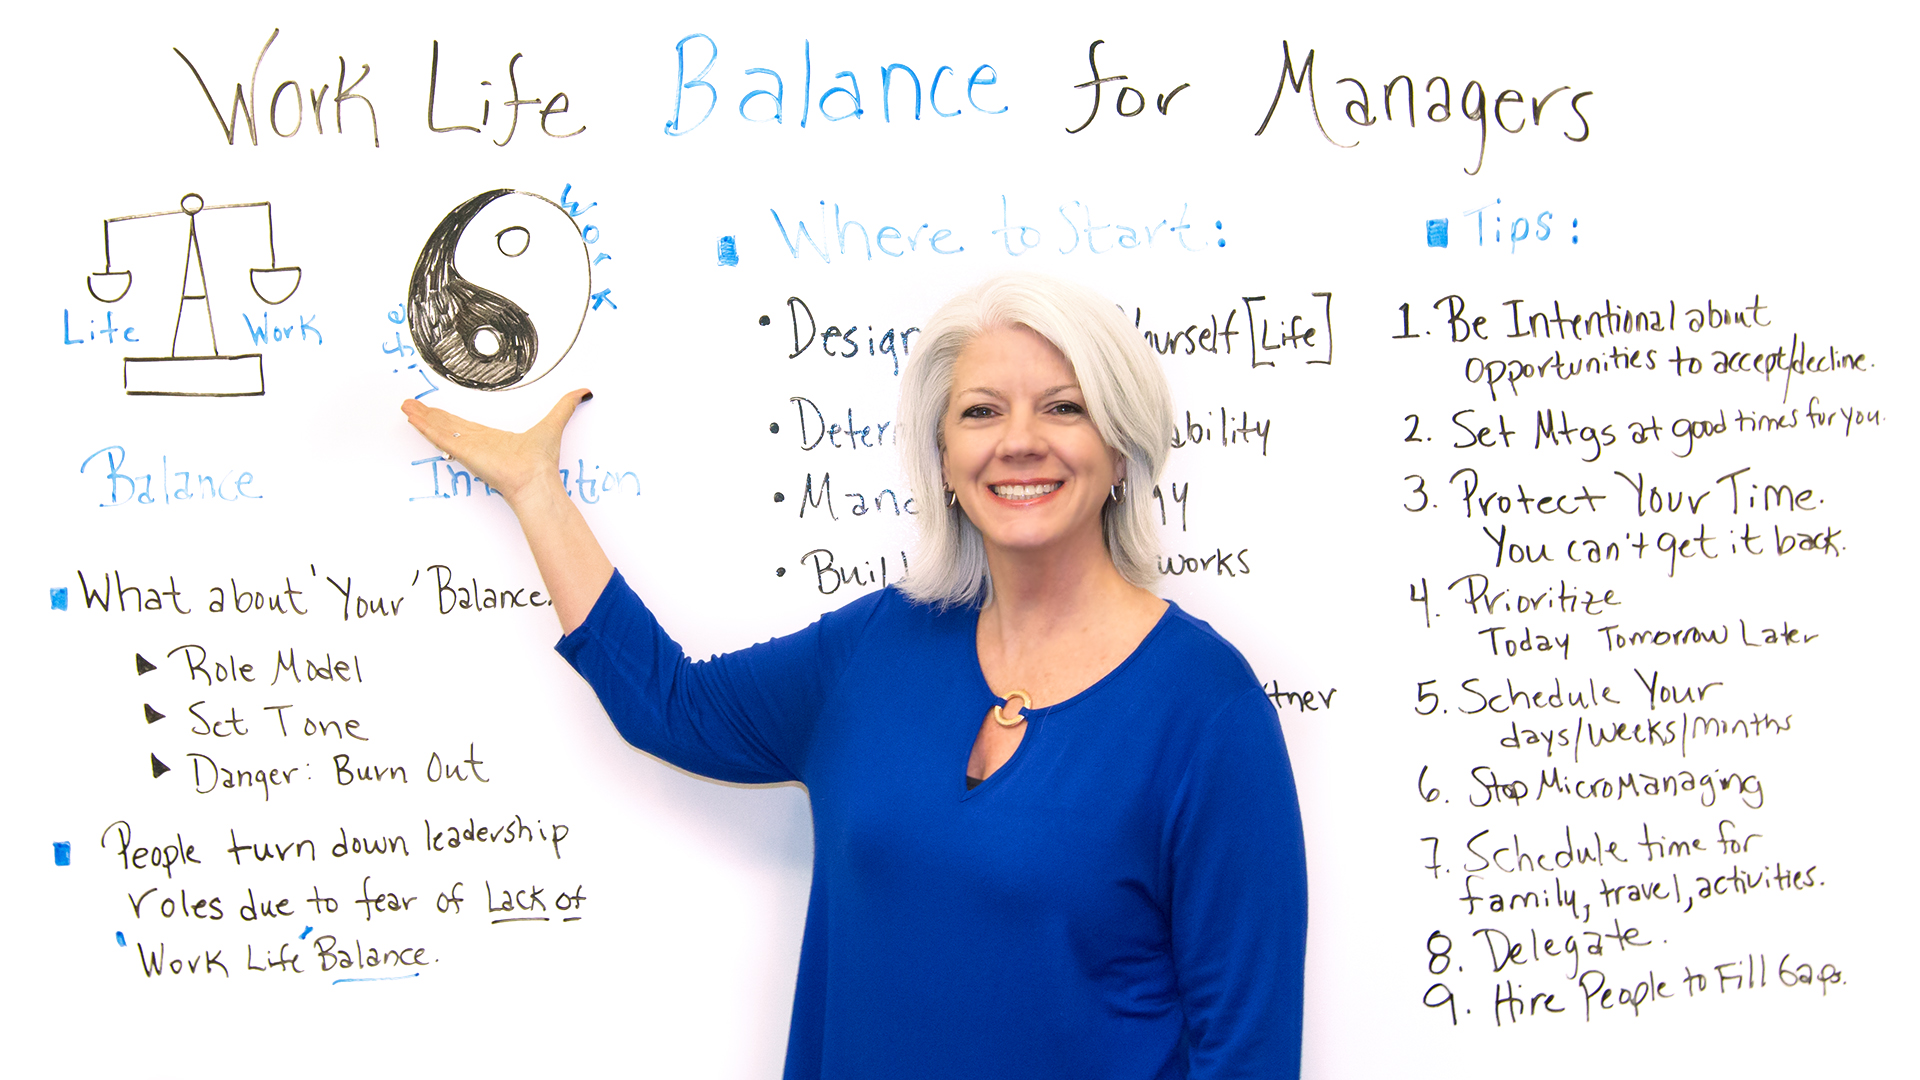 Work Life Balance For Managers